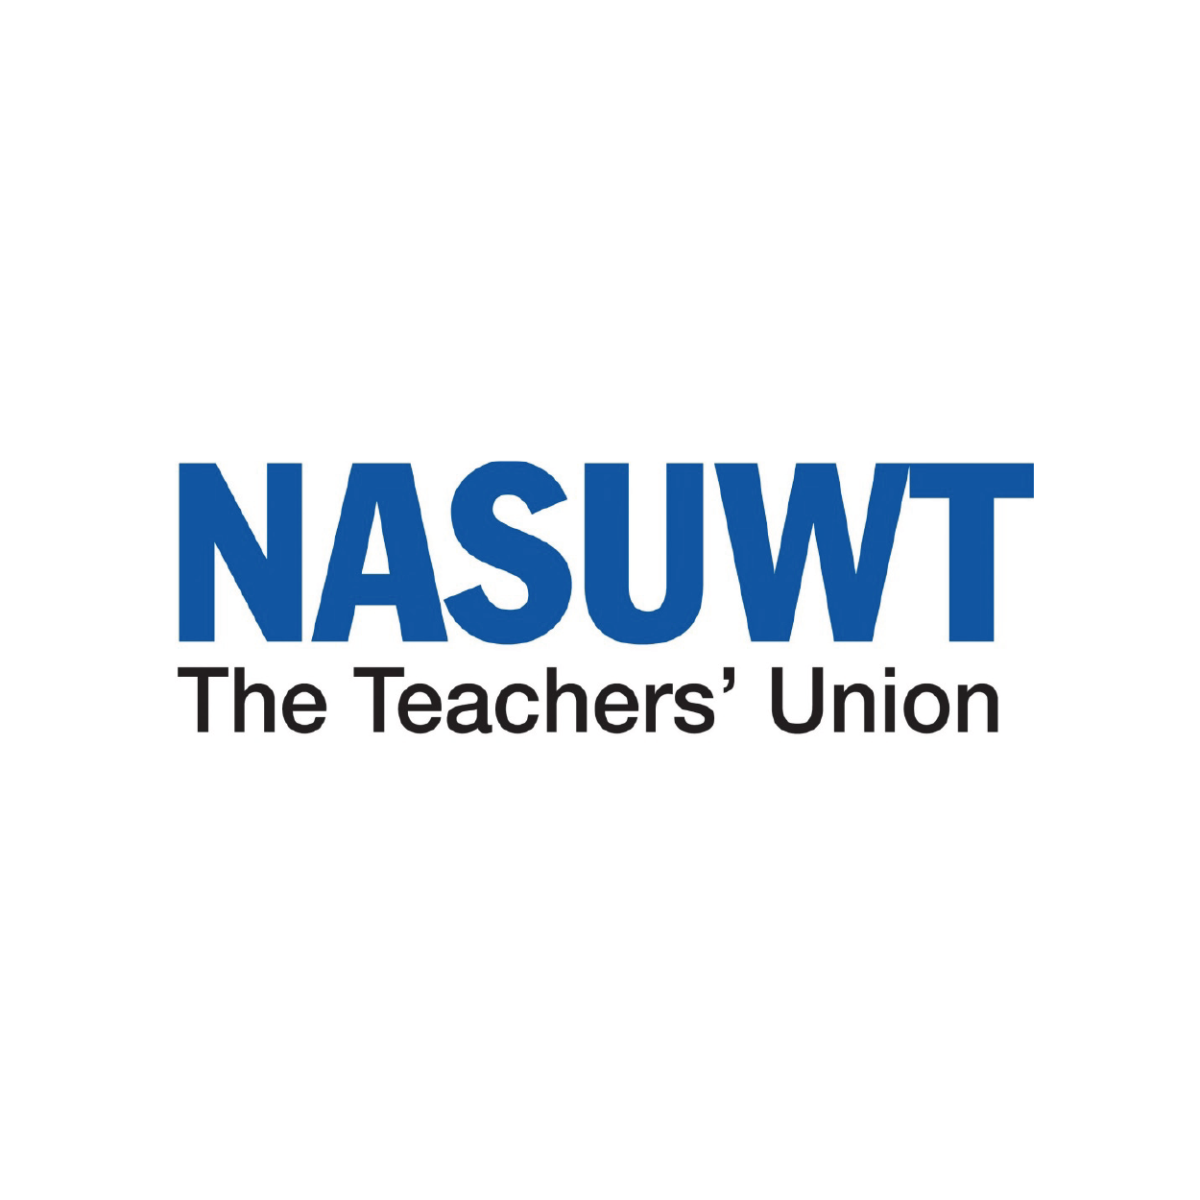 NASUWT The Teachers' Union